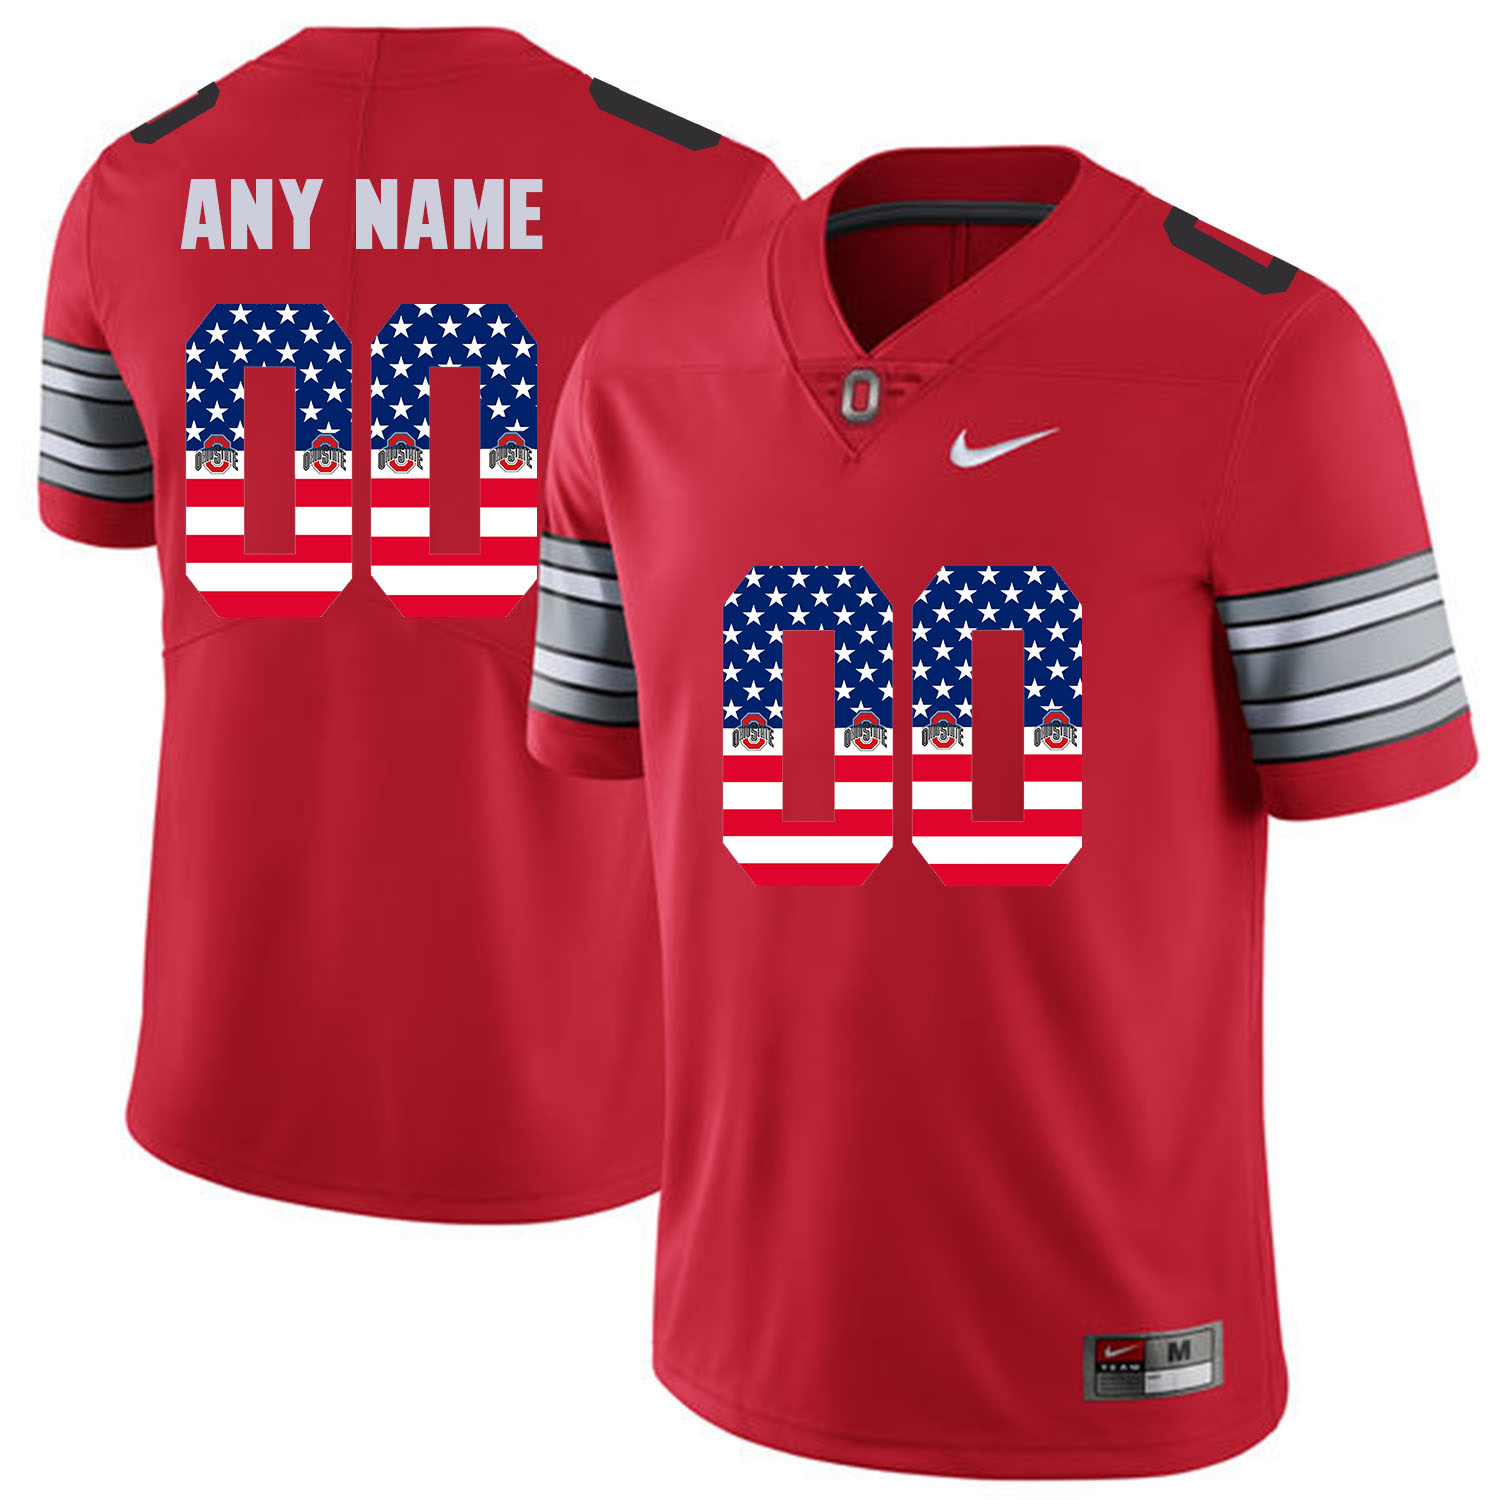 Men Ohio State 00 Any name Red Flag Customized NCAA Jerseys